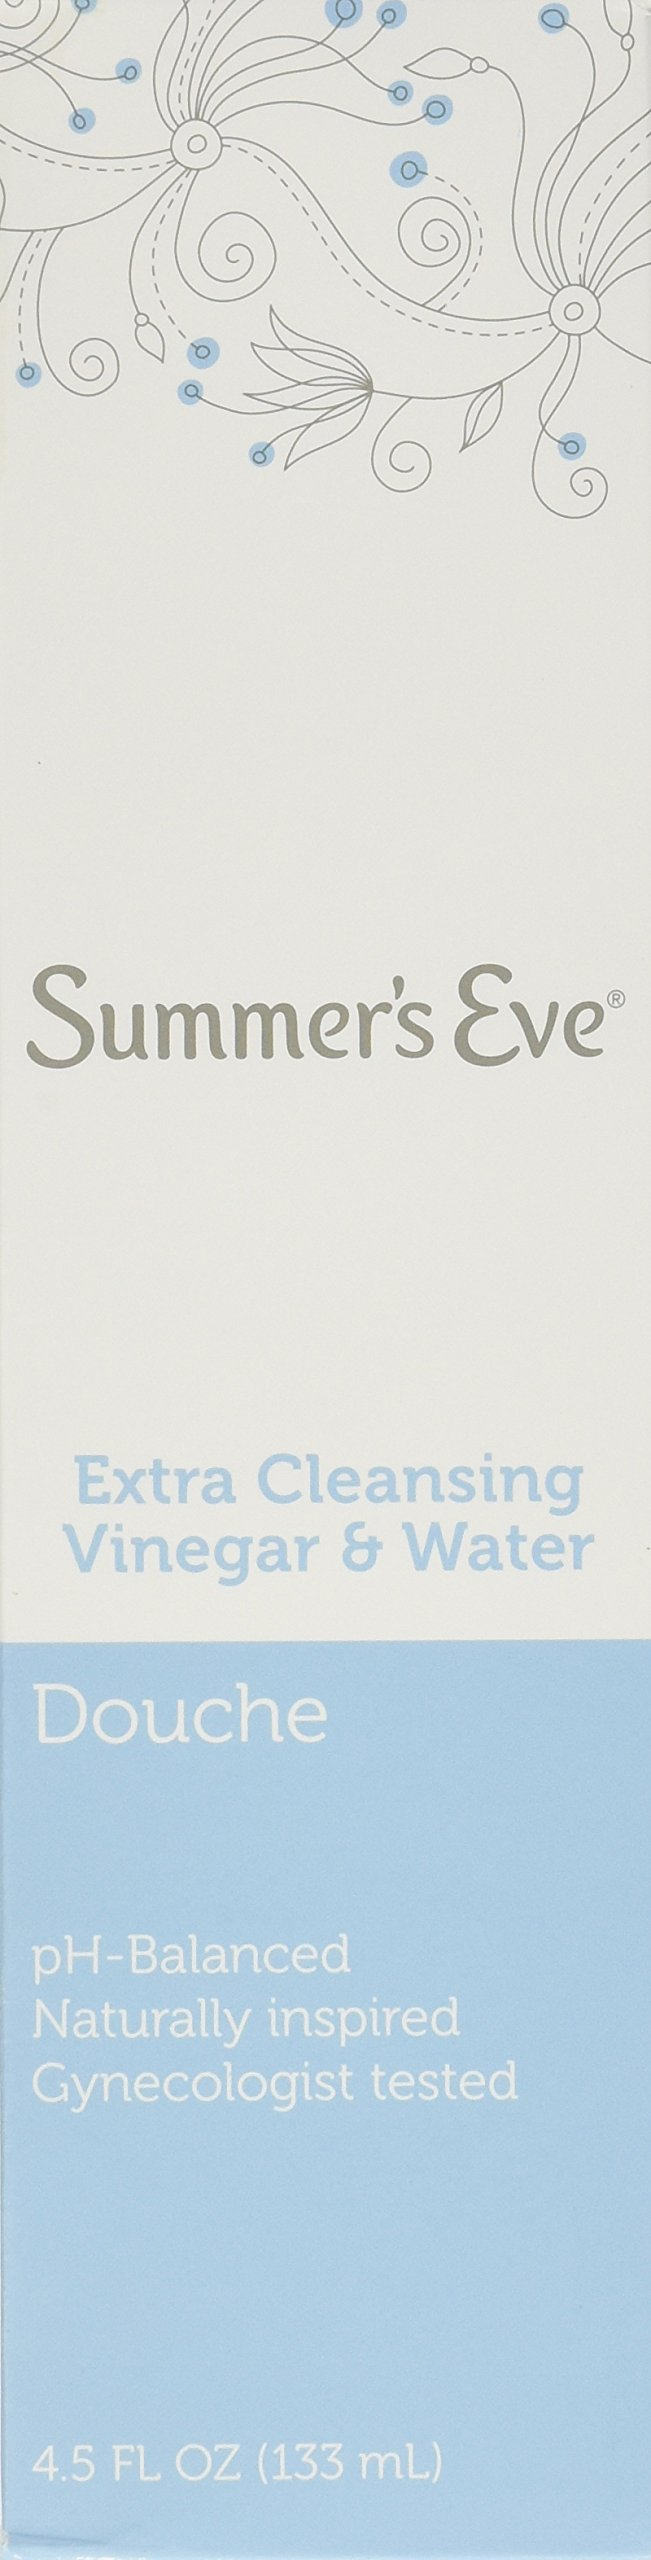 Summer's Eve Douche Extra Cleansing Vinegar & Water 4.5 Fl Oz/133 Ml(Pack of 6)